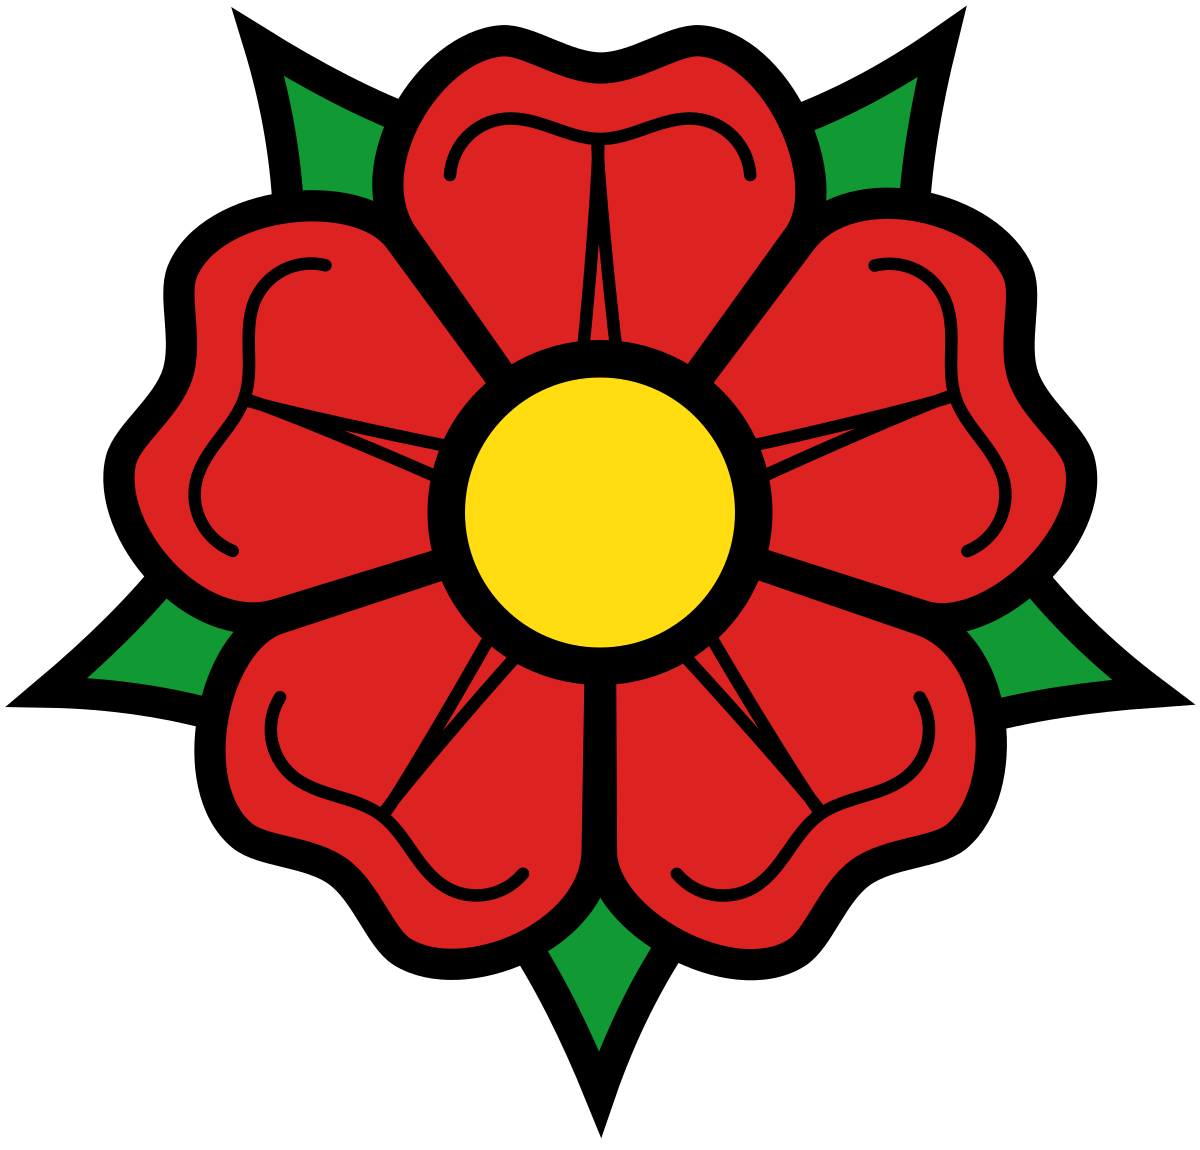 Poppy clipart stylized. Rose heraldry wikipedia